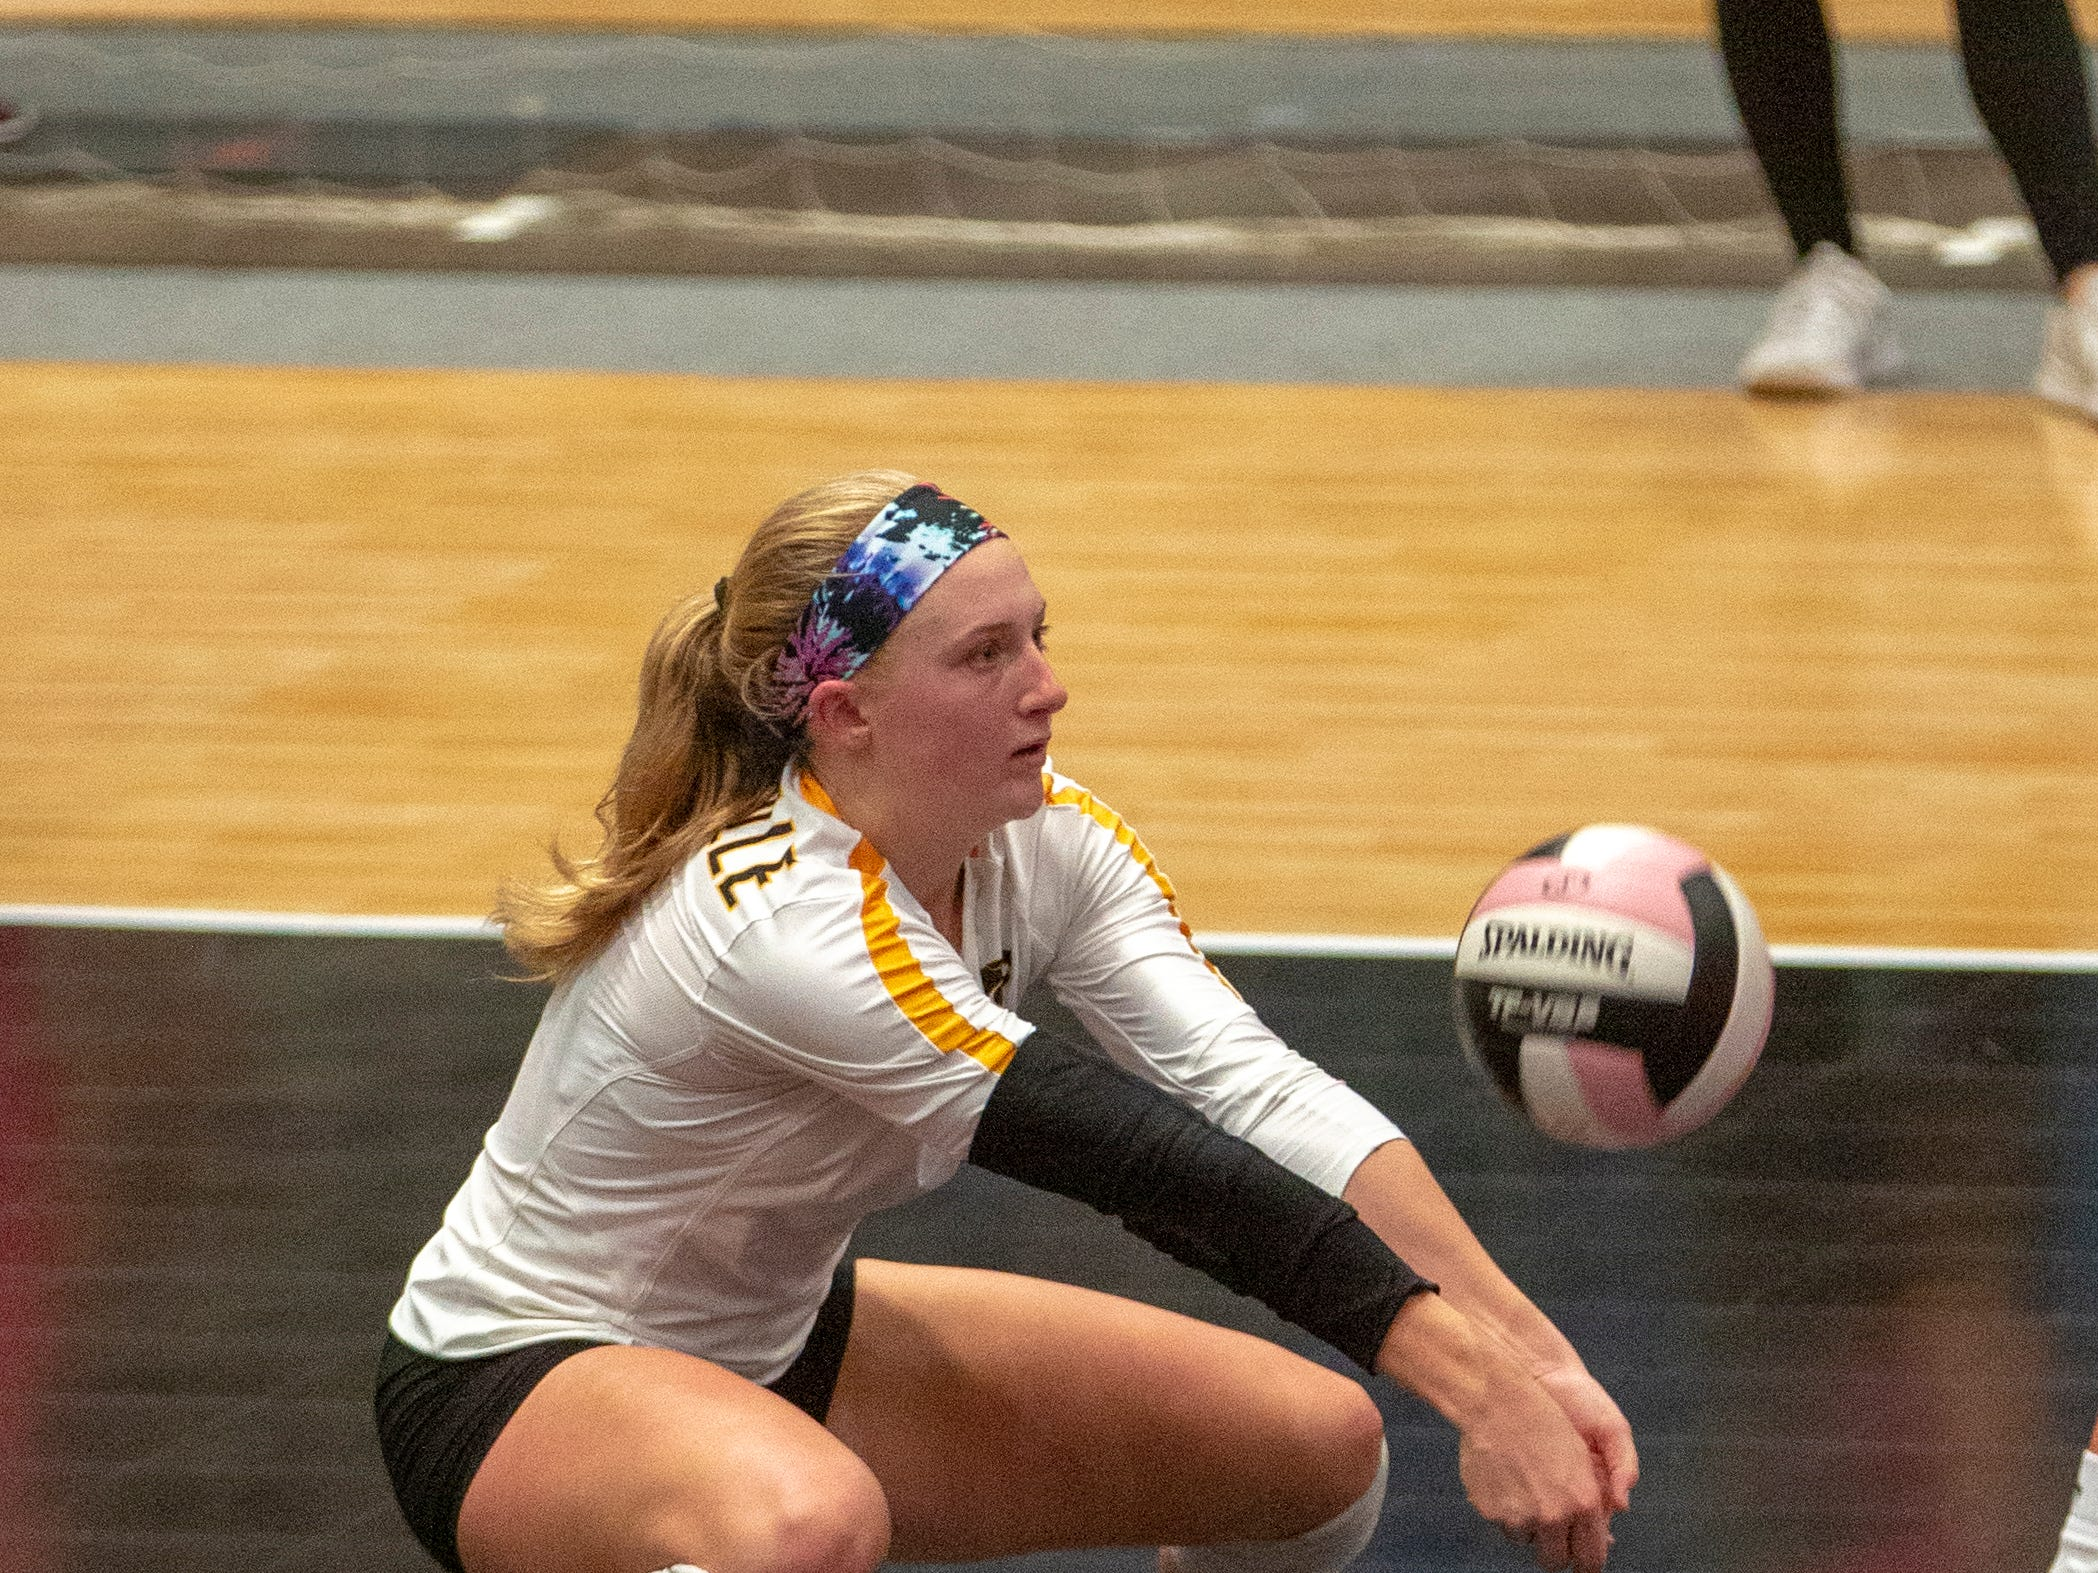 Lilly Liekweg of Janesville gets low for a dig Wednesday during a quarterfinal match.